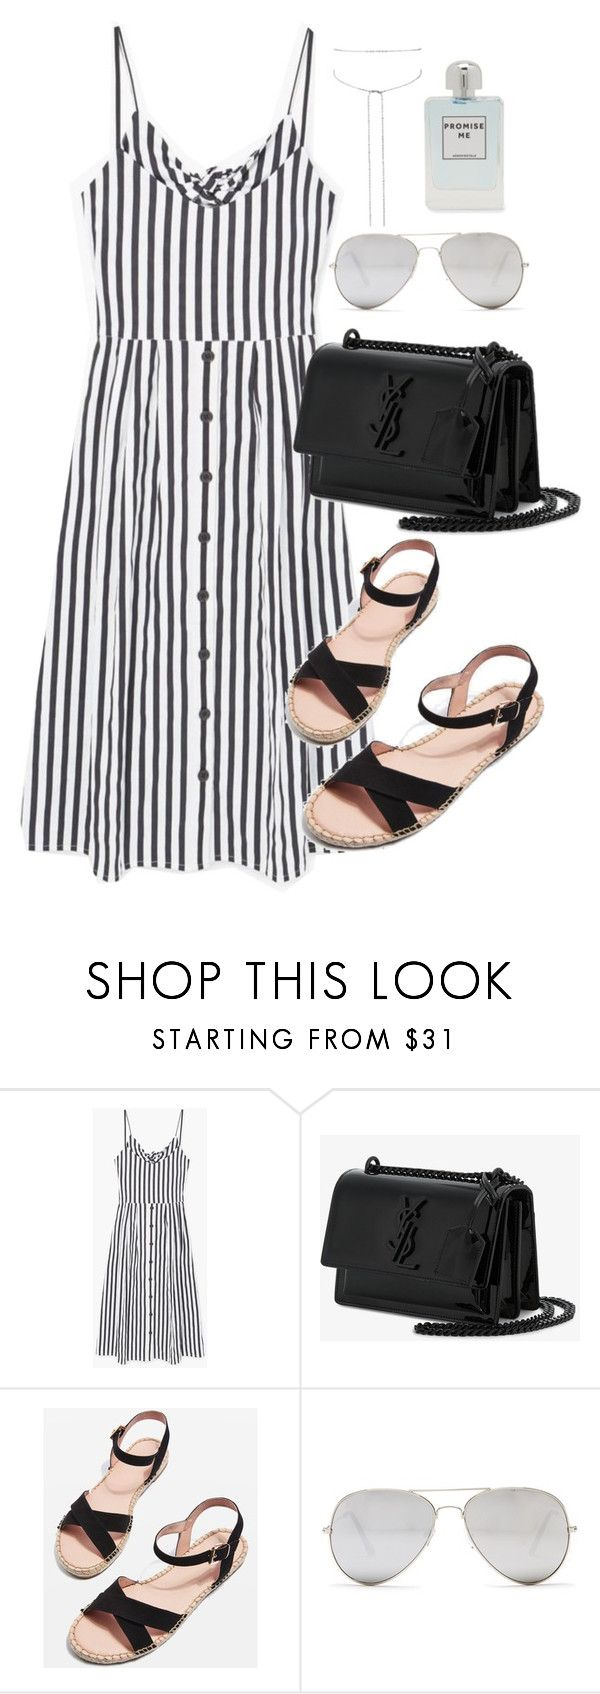 """""""Untitled #3683"""" by theaverageauburn ❤ liked on Polyvore featuring MANGO, Yves Saint Laurent, Topshop, Sunny Rebel and Aéropostale"""